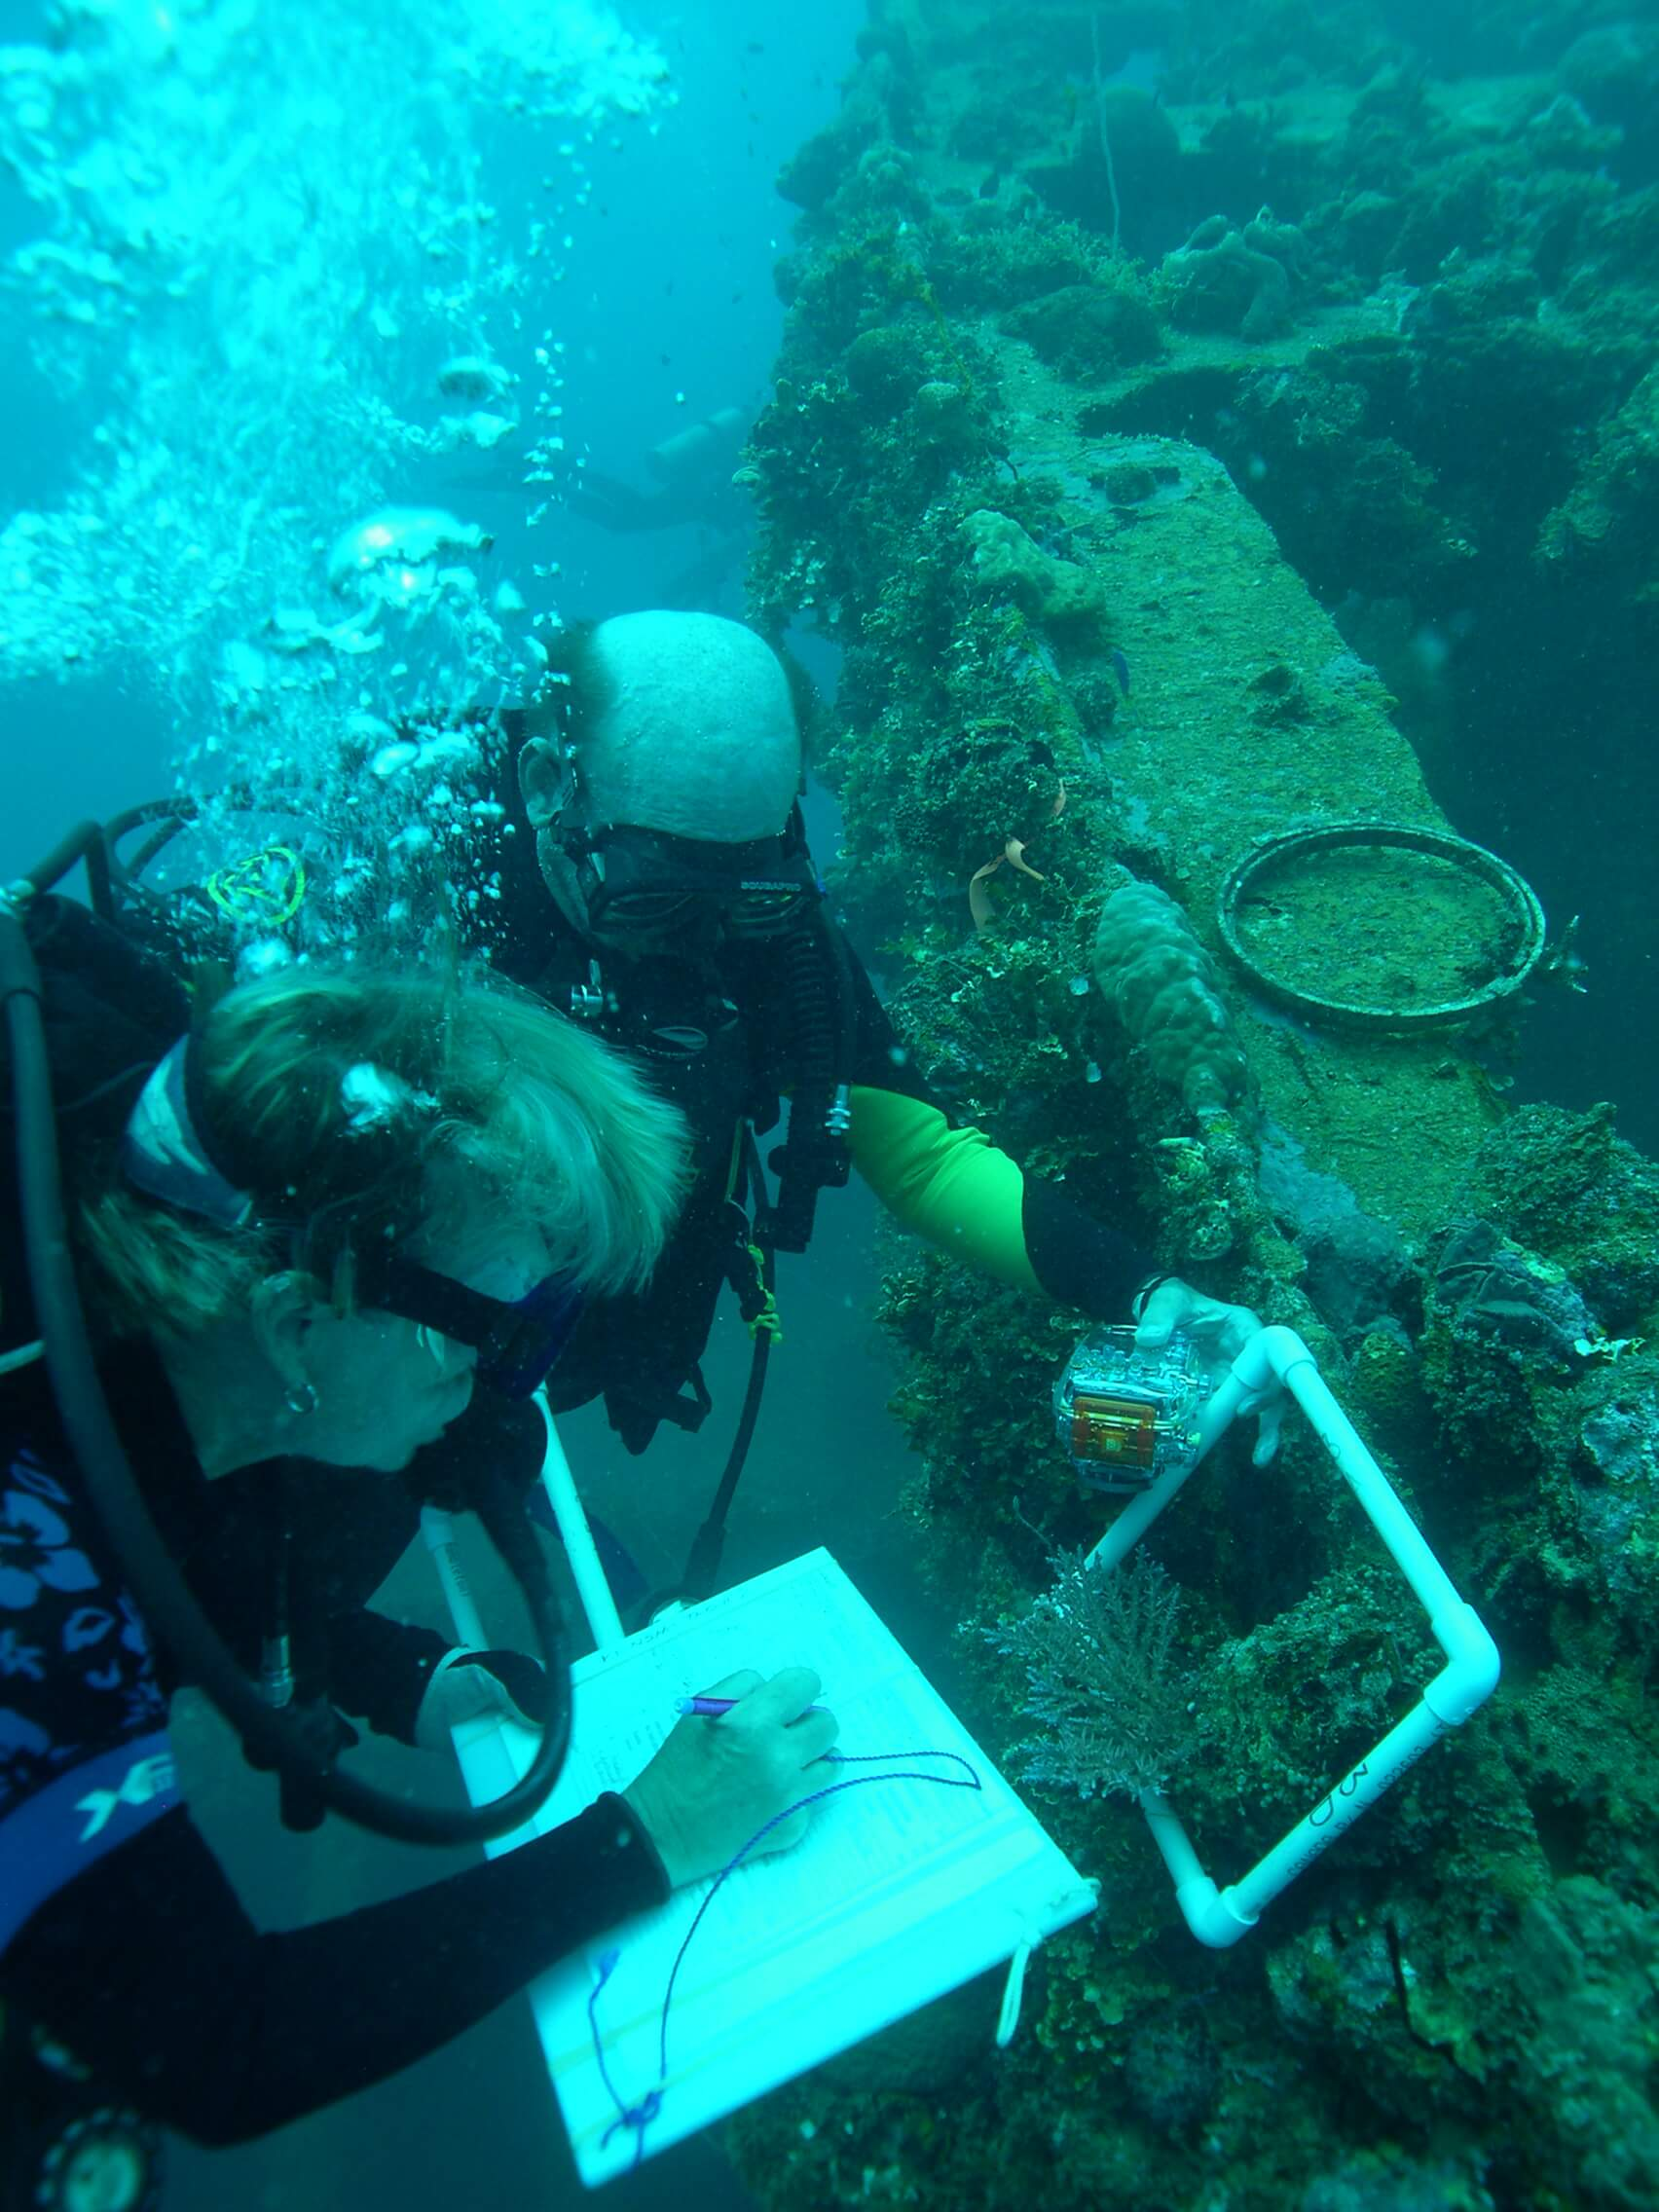 Volunteer divers recording the benthic covering on the Kiyosumi Maru shipwreck in Chuuk Lagoon.